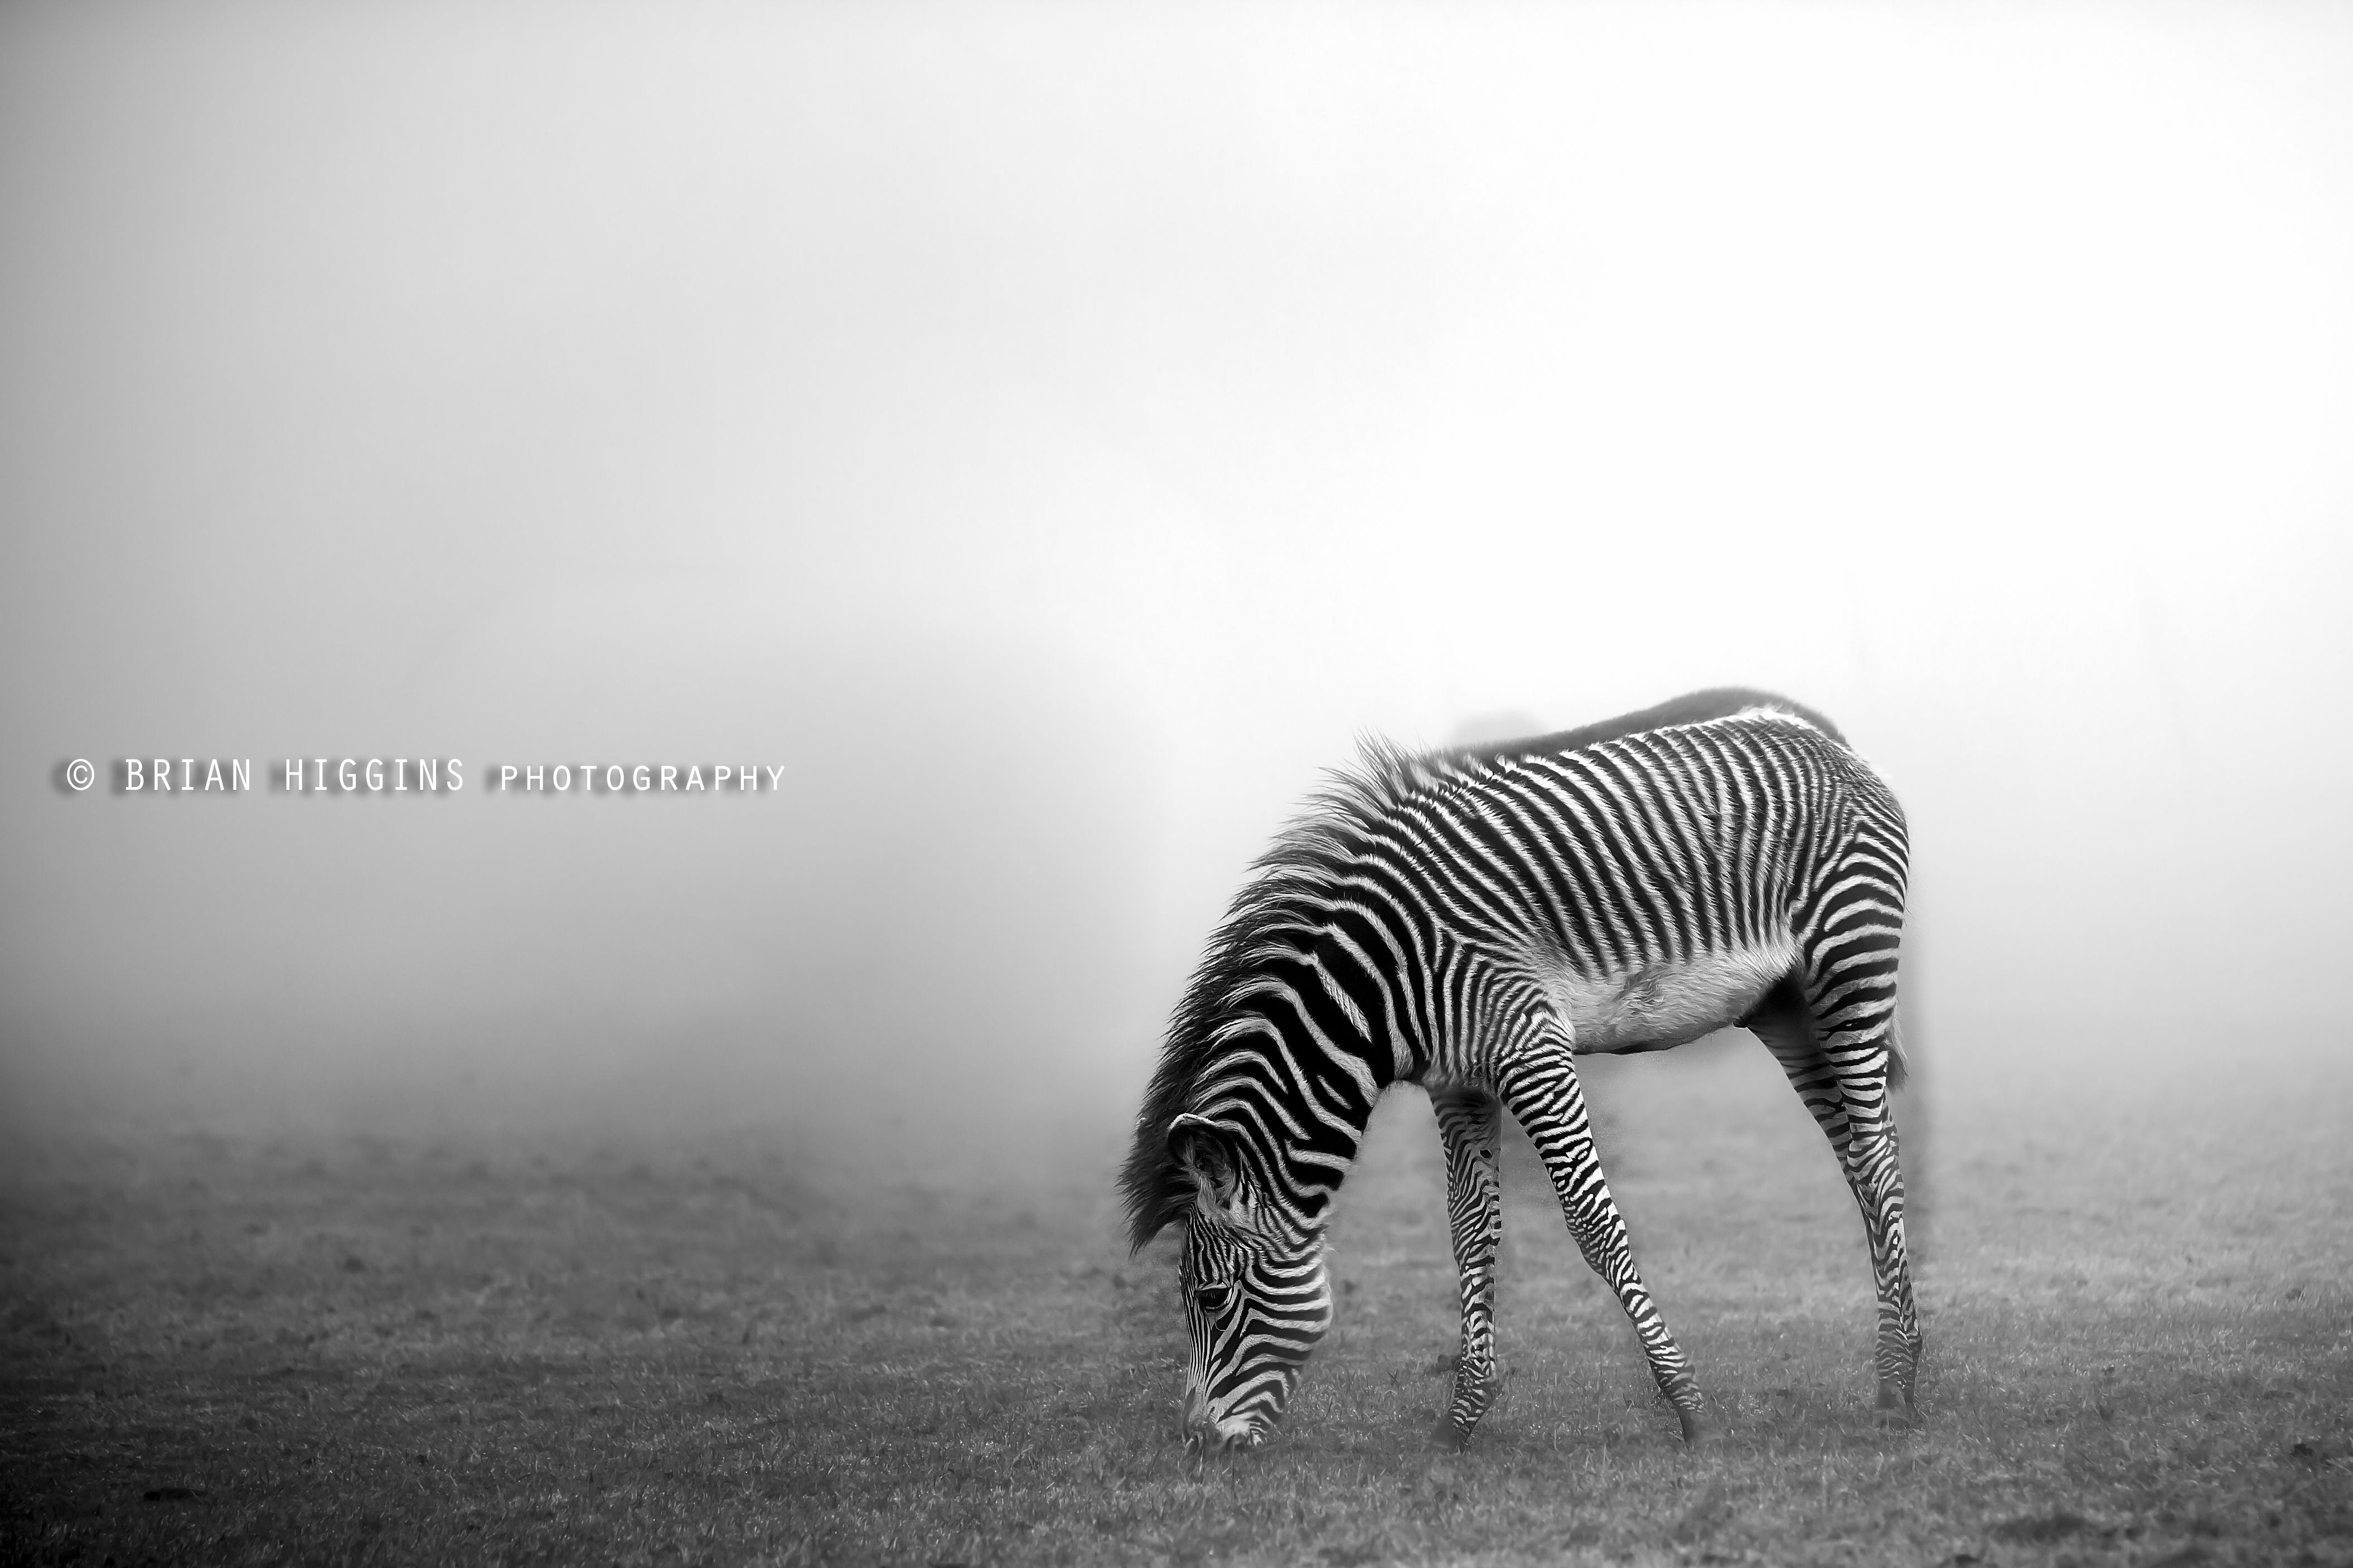 A lone Zebra in the mist of Whipsnade Zoo, Dunstable, Bedfordshire  www.brianhigginsphotography.com